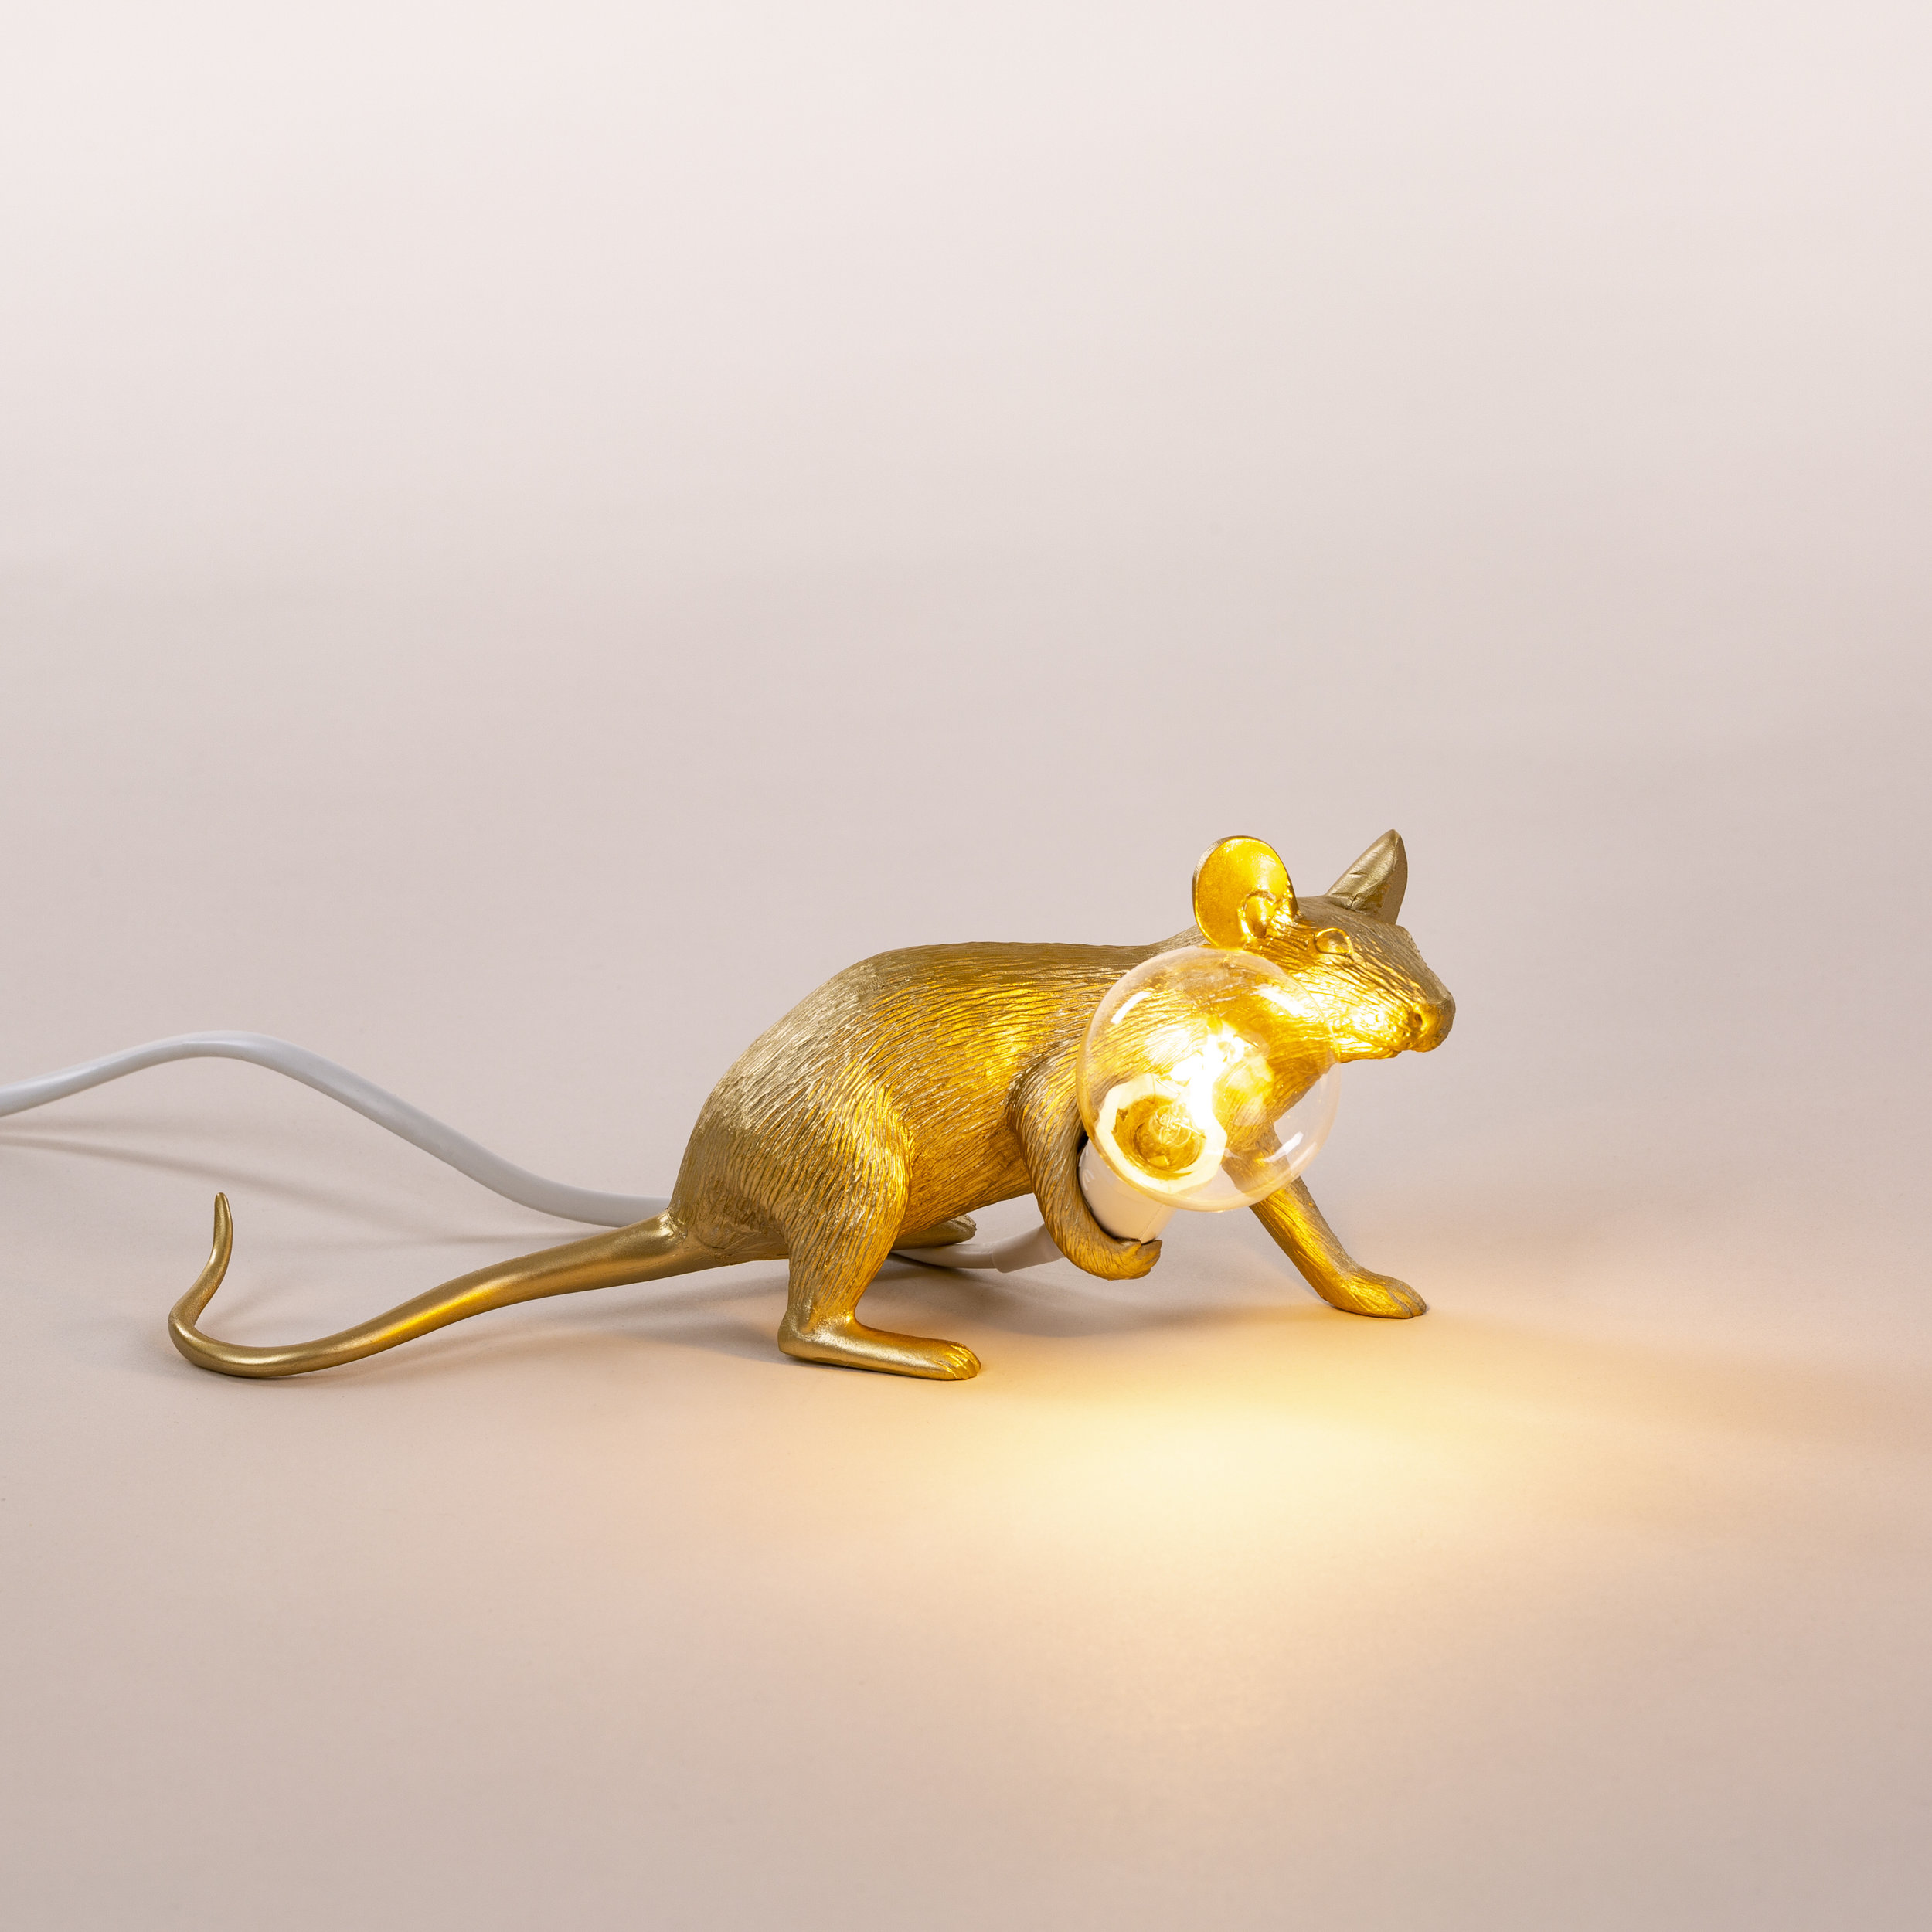 LIMITED EDITION GOLD MOUSE LYING DOWN  R3 220.00 incl VAT